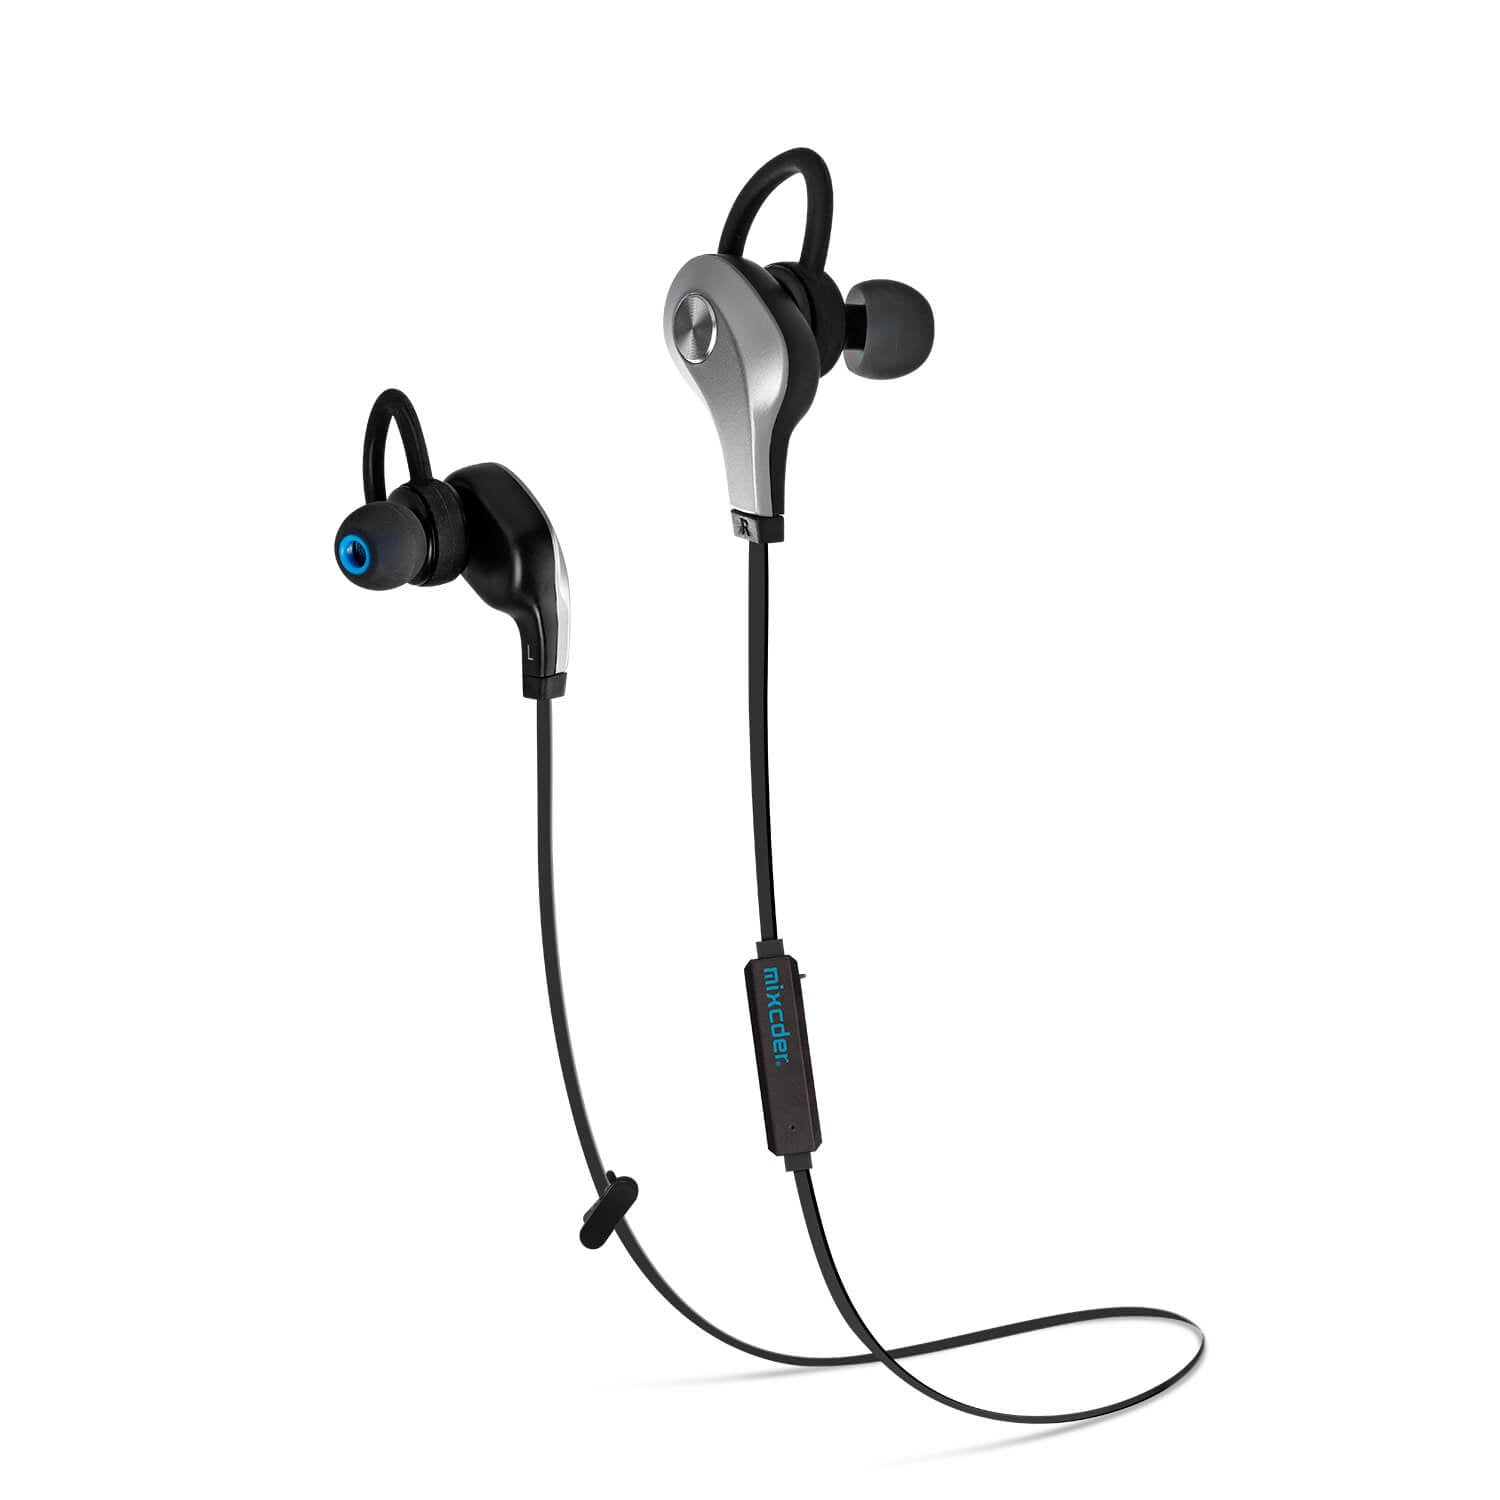 Mixcder Pro 911 Wireless Bluetooth Earphones